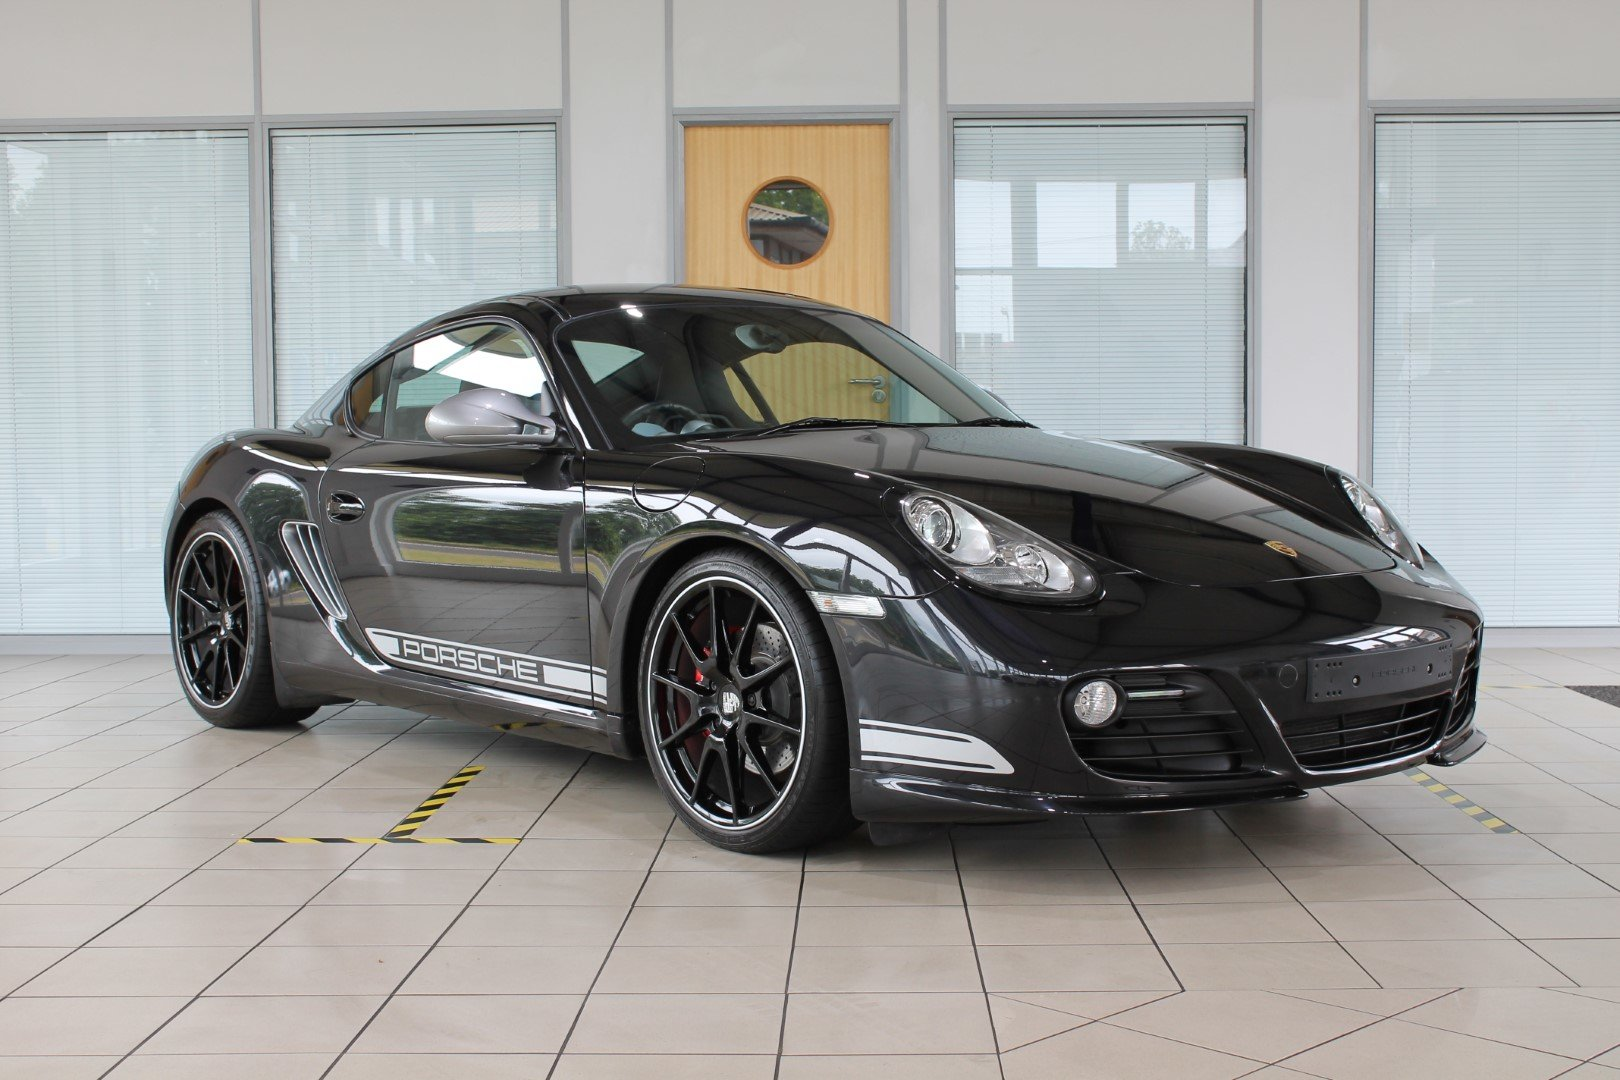 2011 Porsche Cayman (987) 3.4 R PDK For Sale (picture 4 of 6)